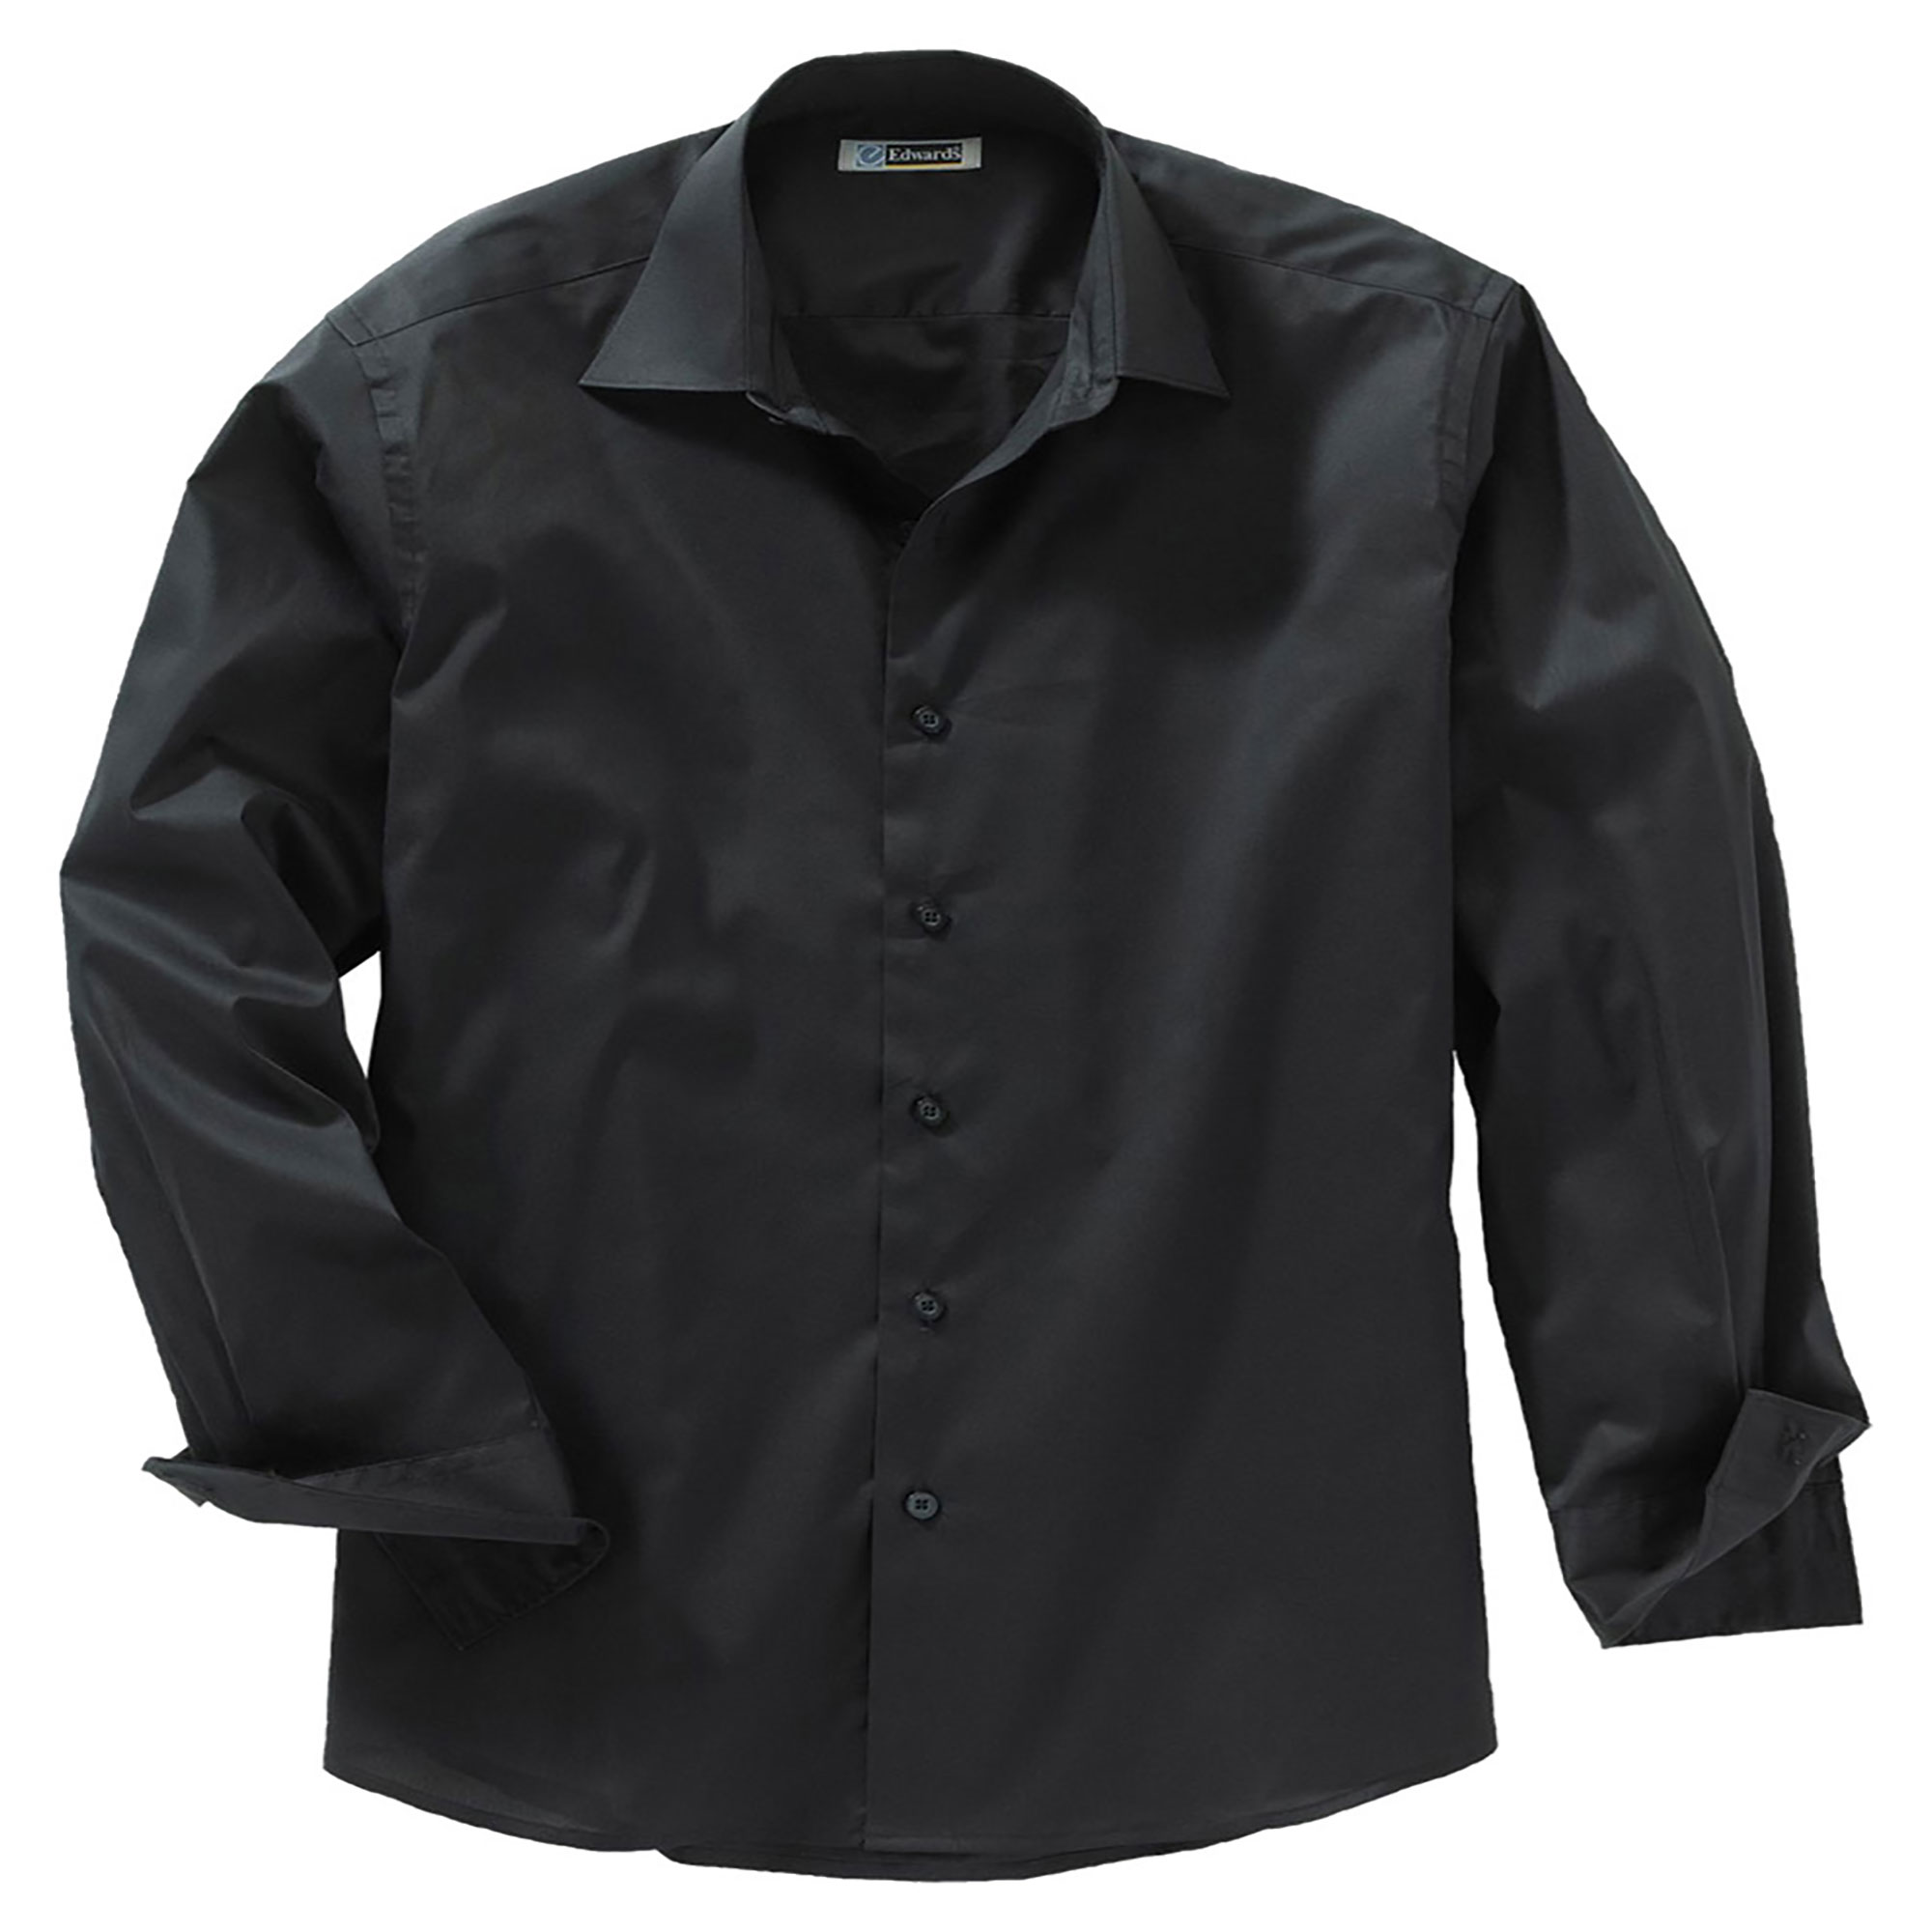 Edwards Garment Men's Big And Tall Wrinkle Resistant Dress Shirt, Style 1033